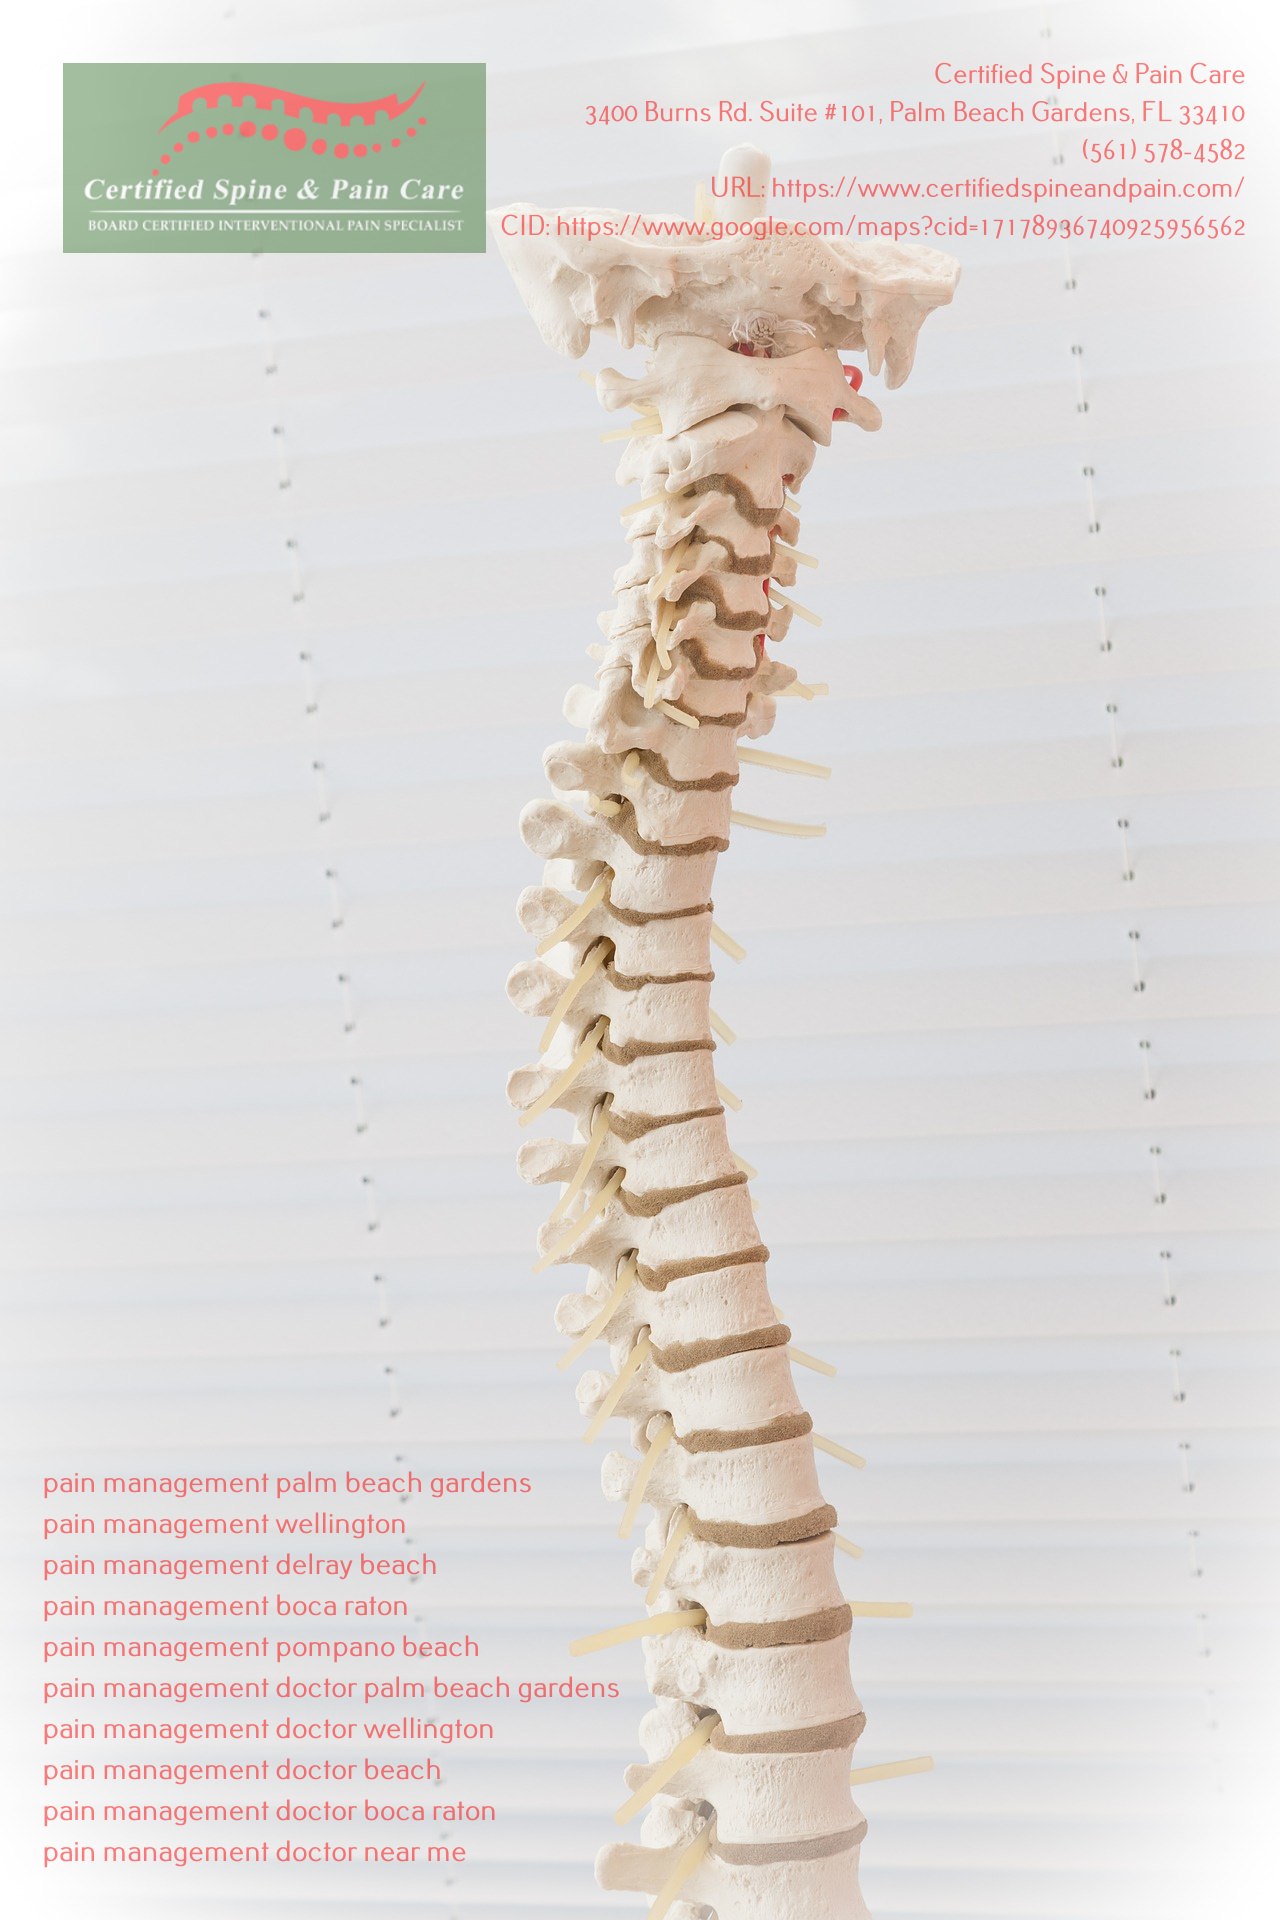 Certified Spine & Pain Care Shares Tips for Preventing Injuries While Keeping Fit